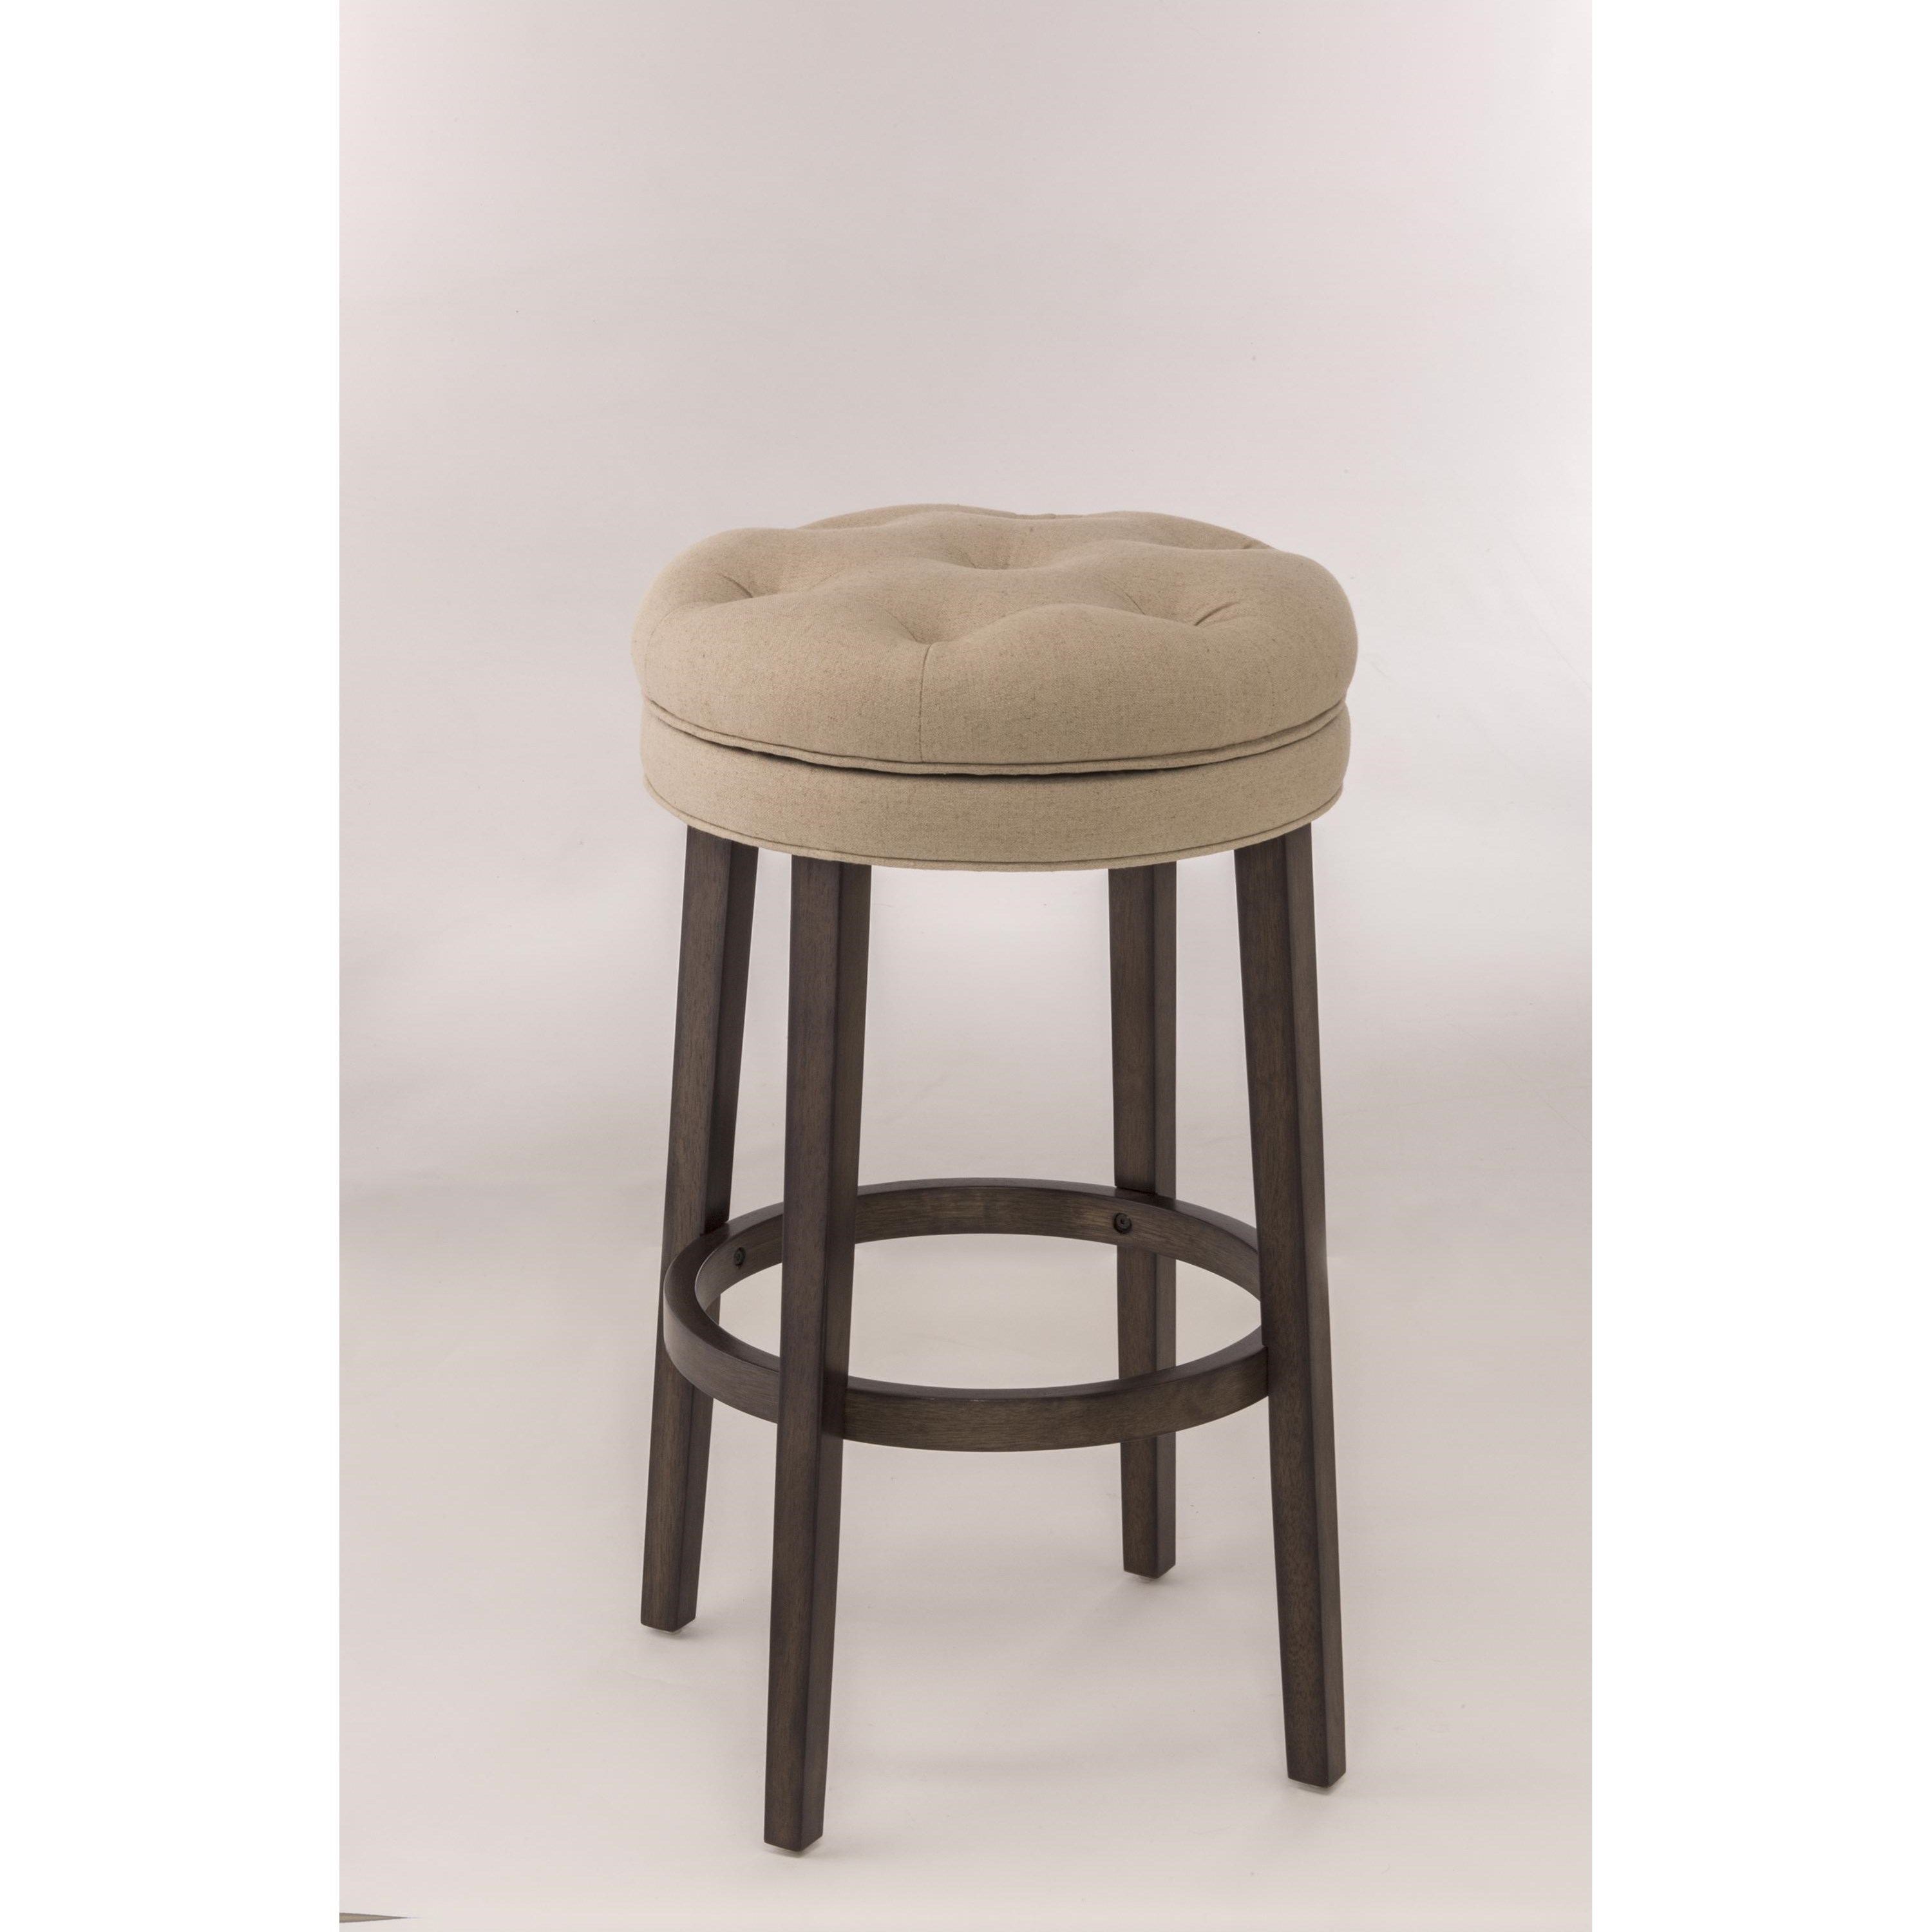 Hillsdale backless bar stools backless swivel counter stool item number 5914 825